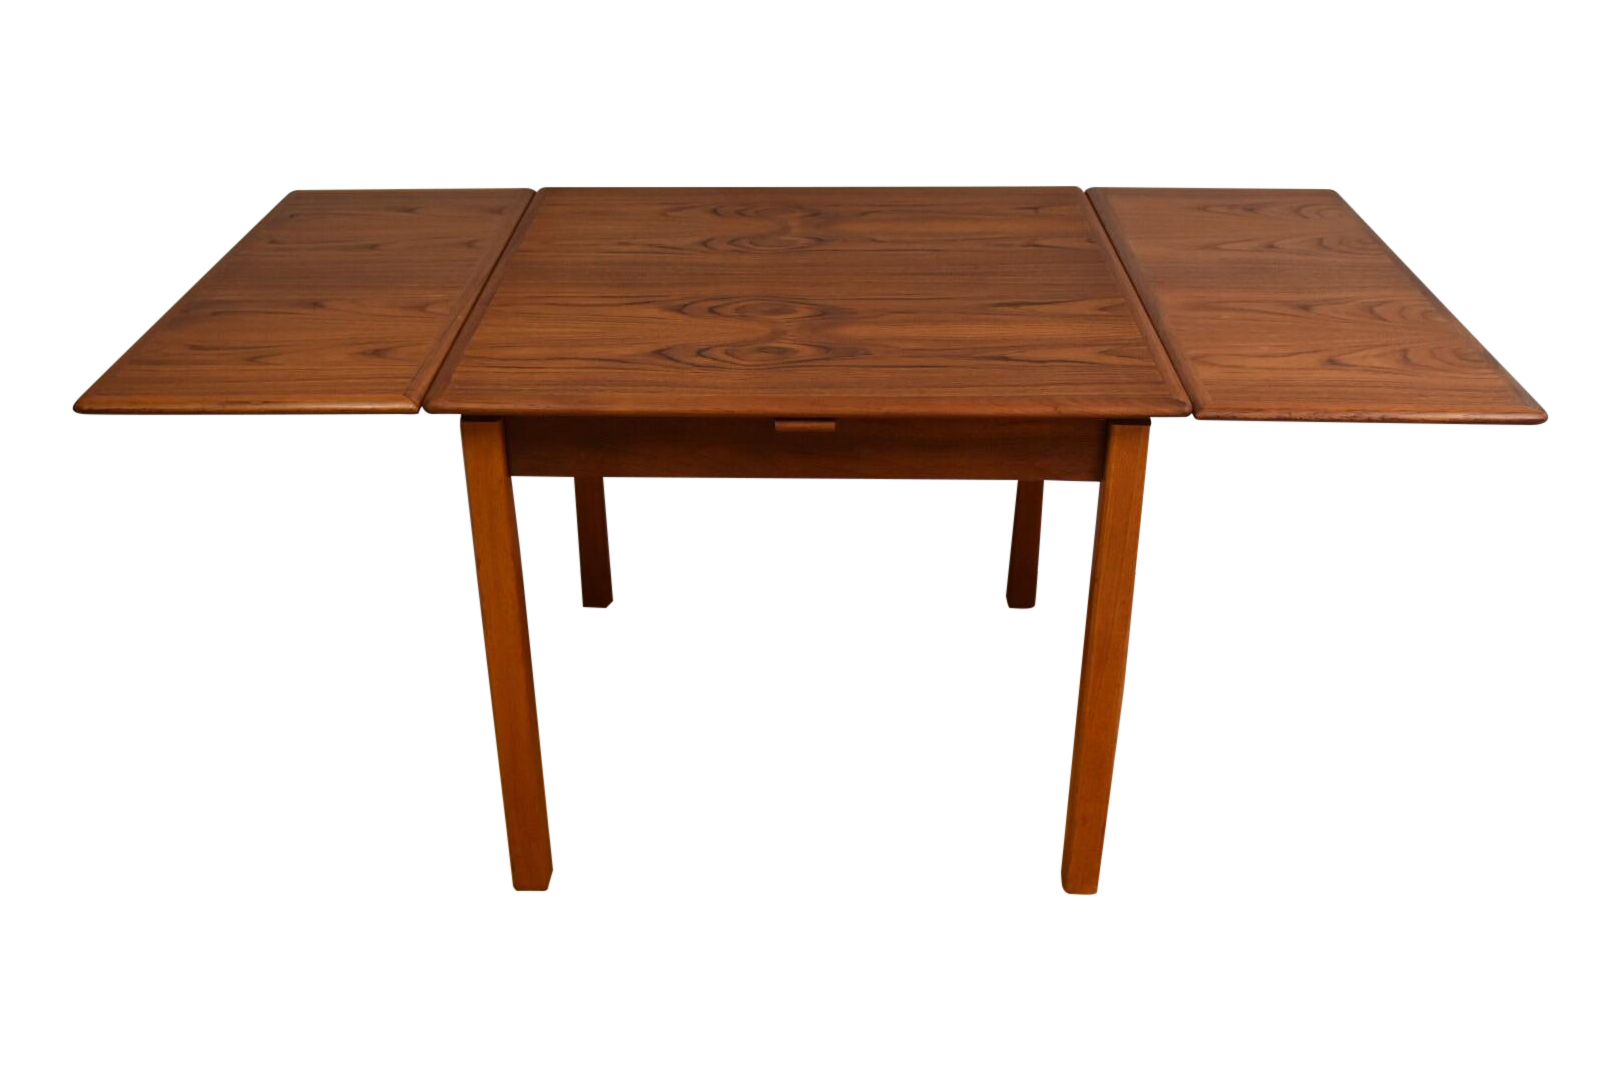 100 table mid century modern danish very large solid rosewo